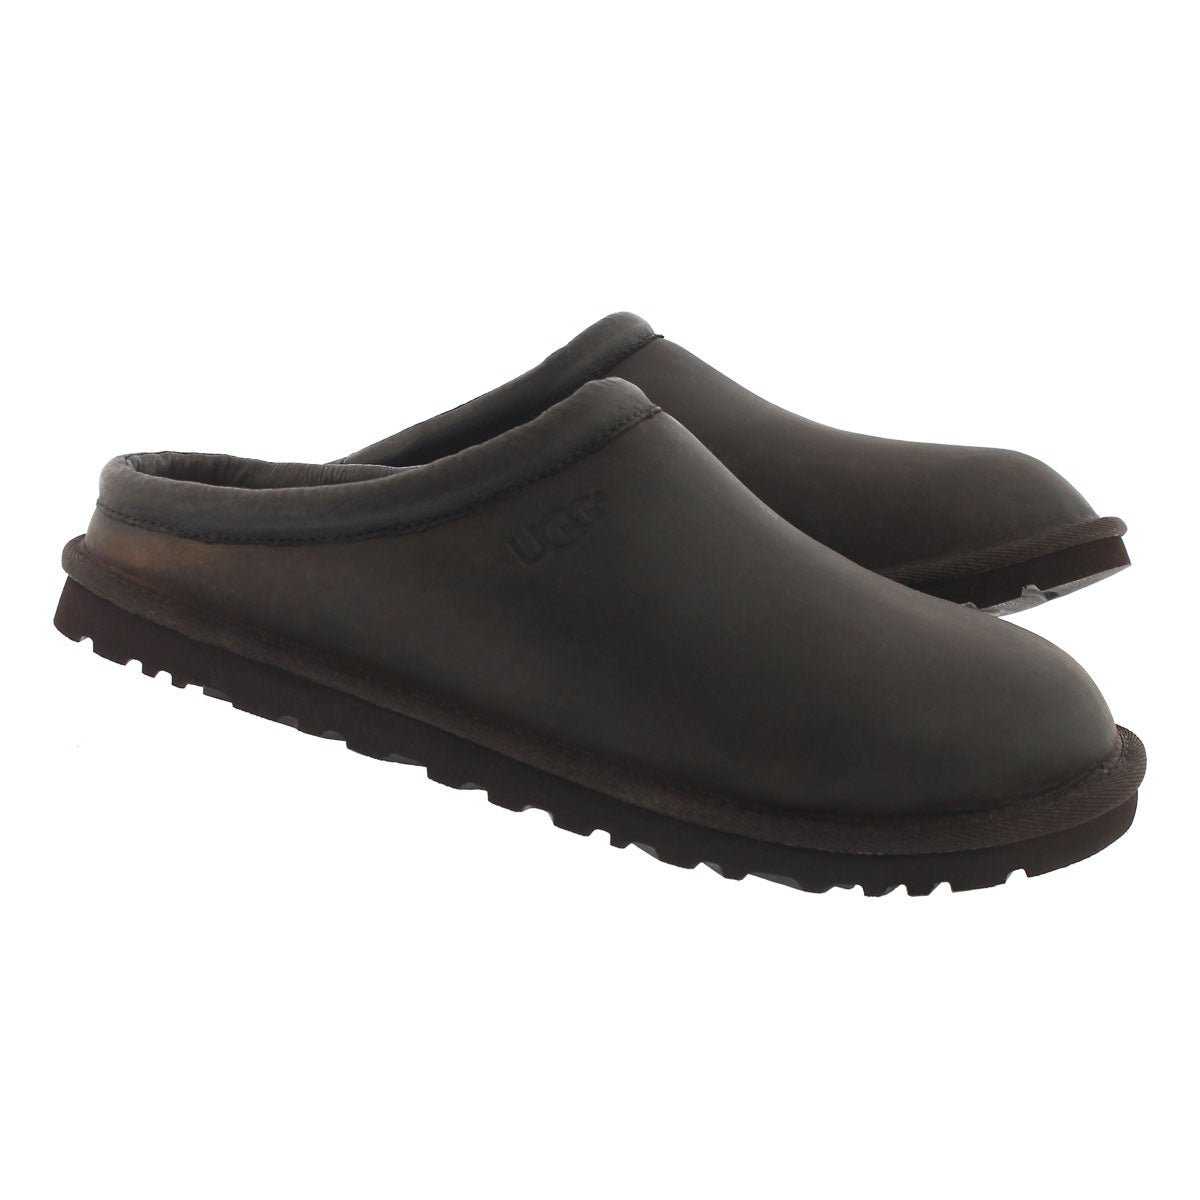 Mns Classic stout casual clog